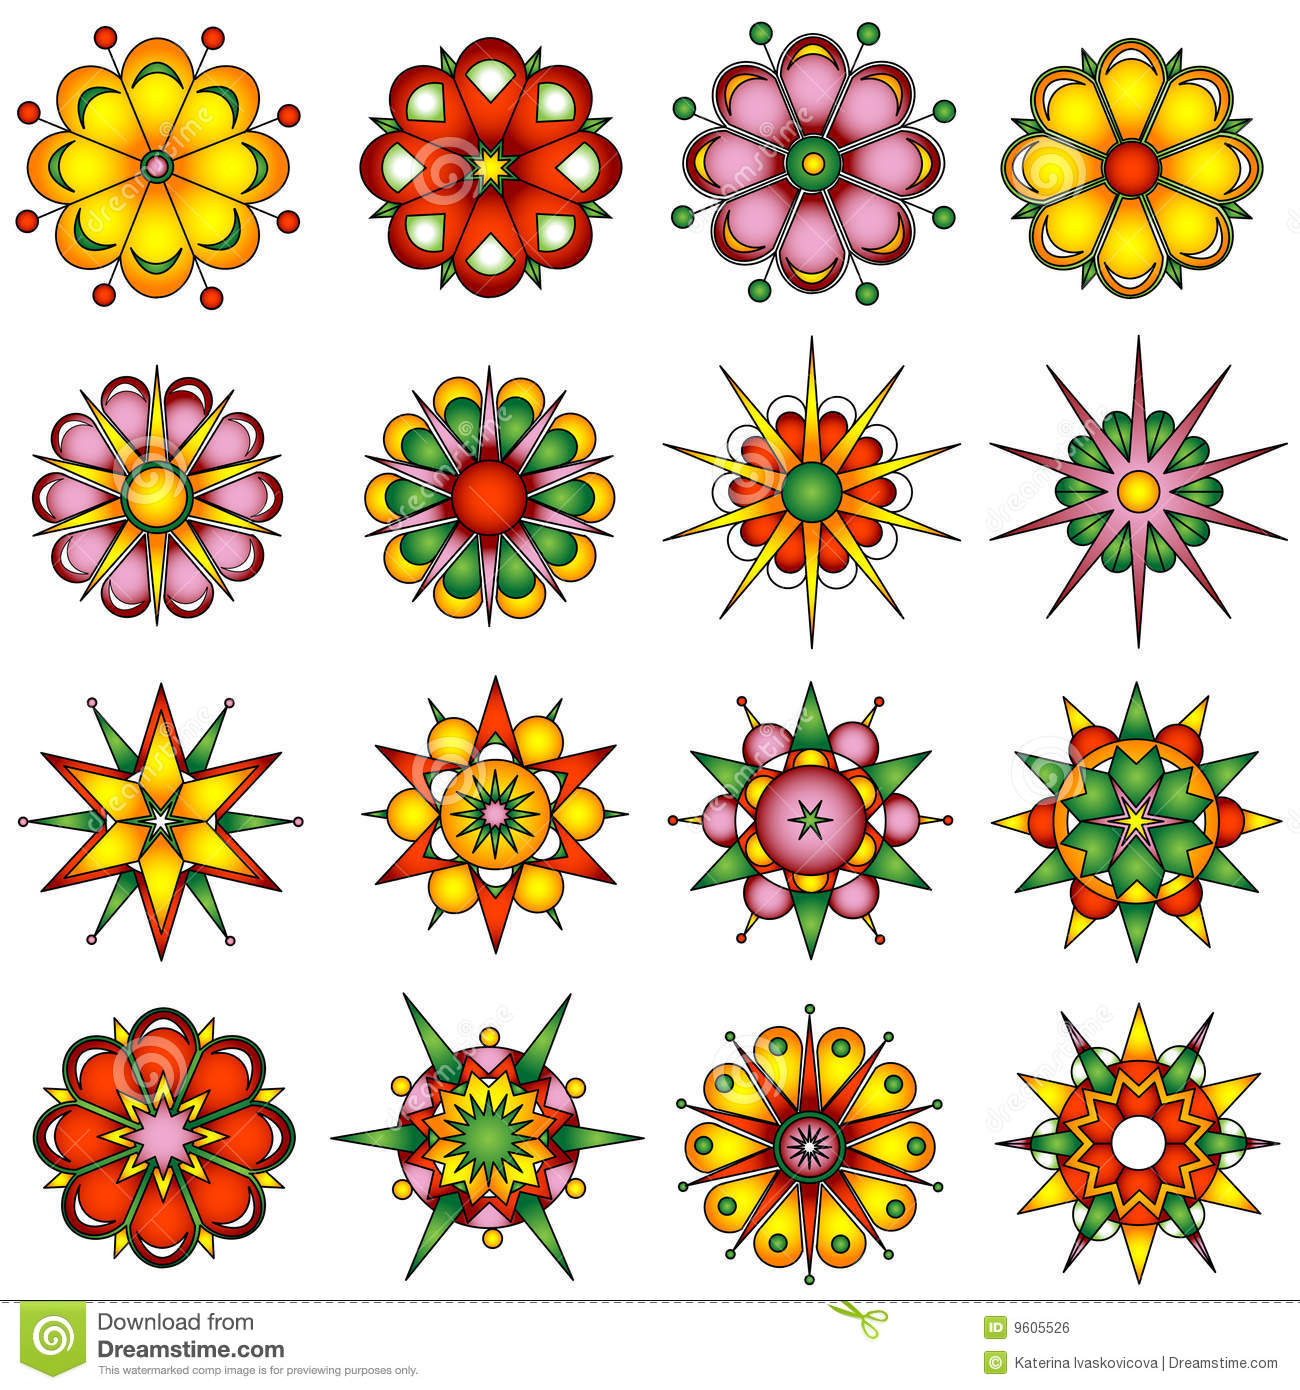 Variety of flower designs stock vector illustration of leaf 9605526 variety of flower designs altavistaventures Images